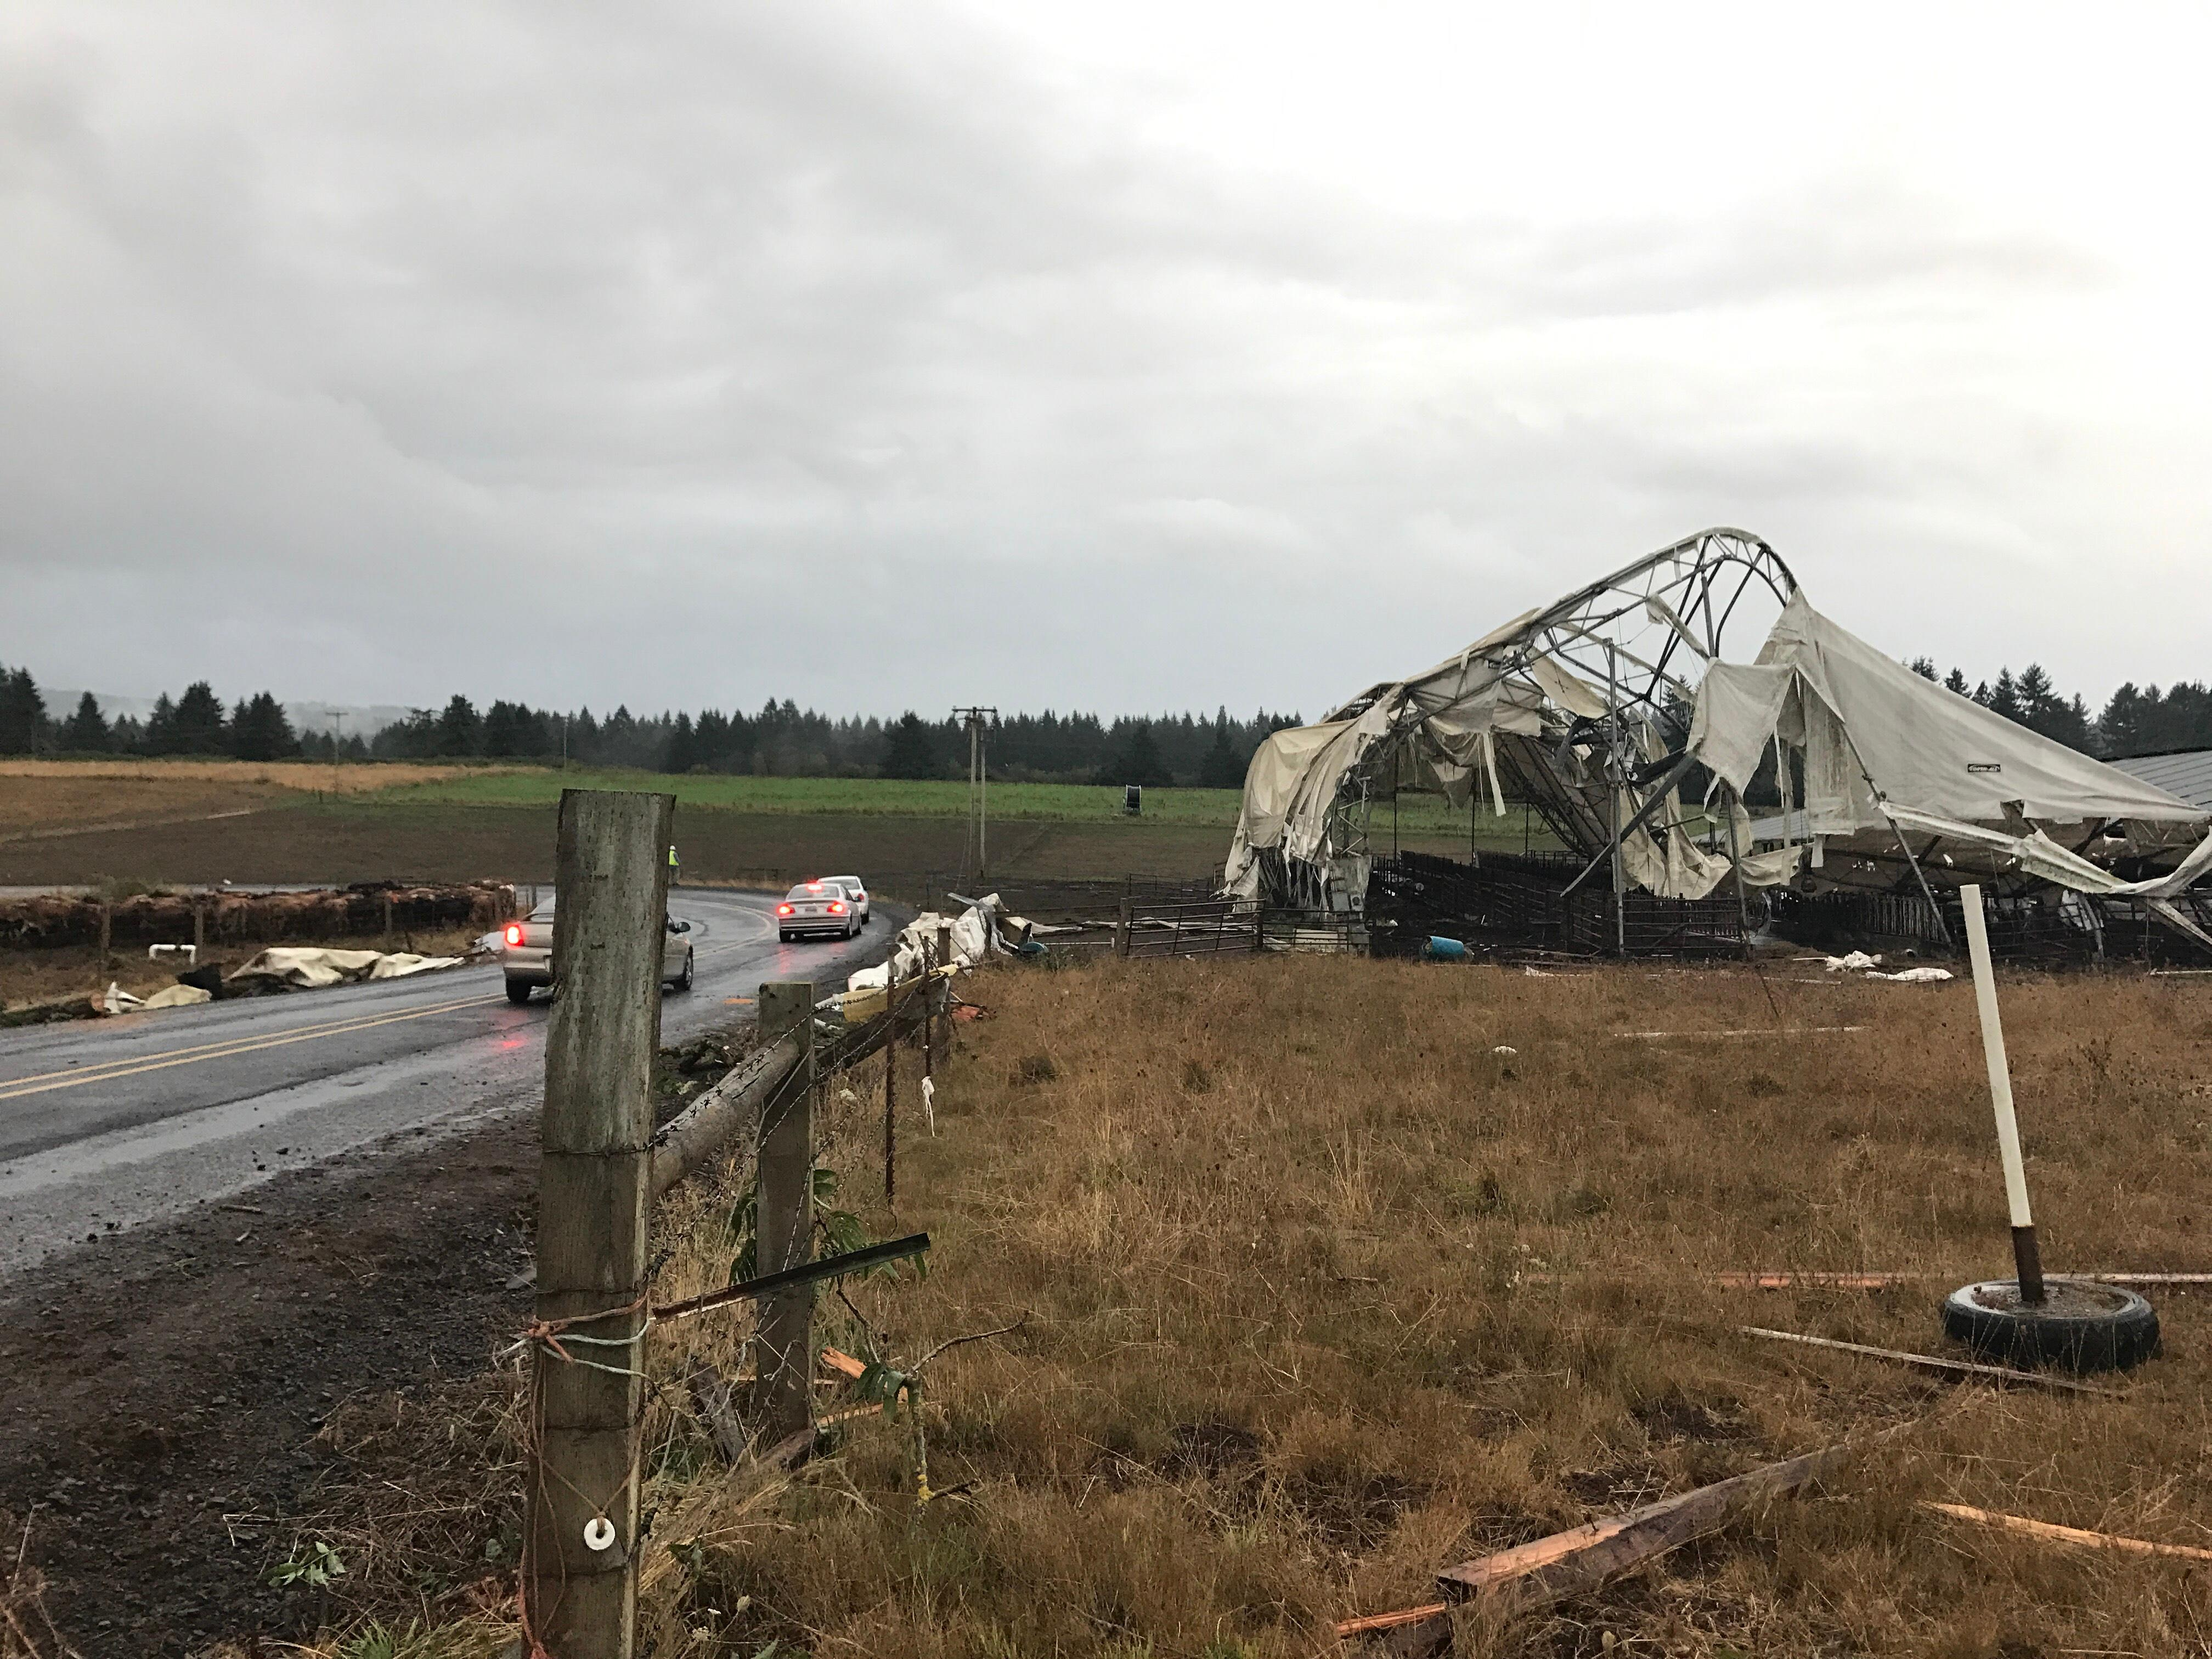 A funnel cloud touched down near Lebanon, Oregon on Tuesday, causing damage to four barns in the area.